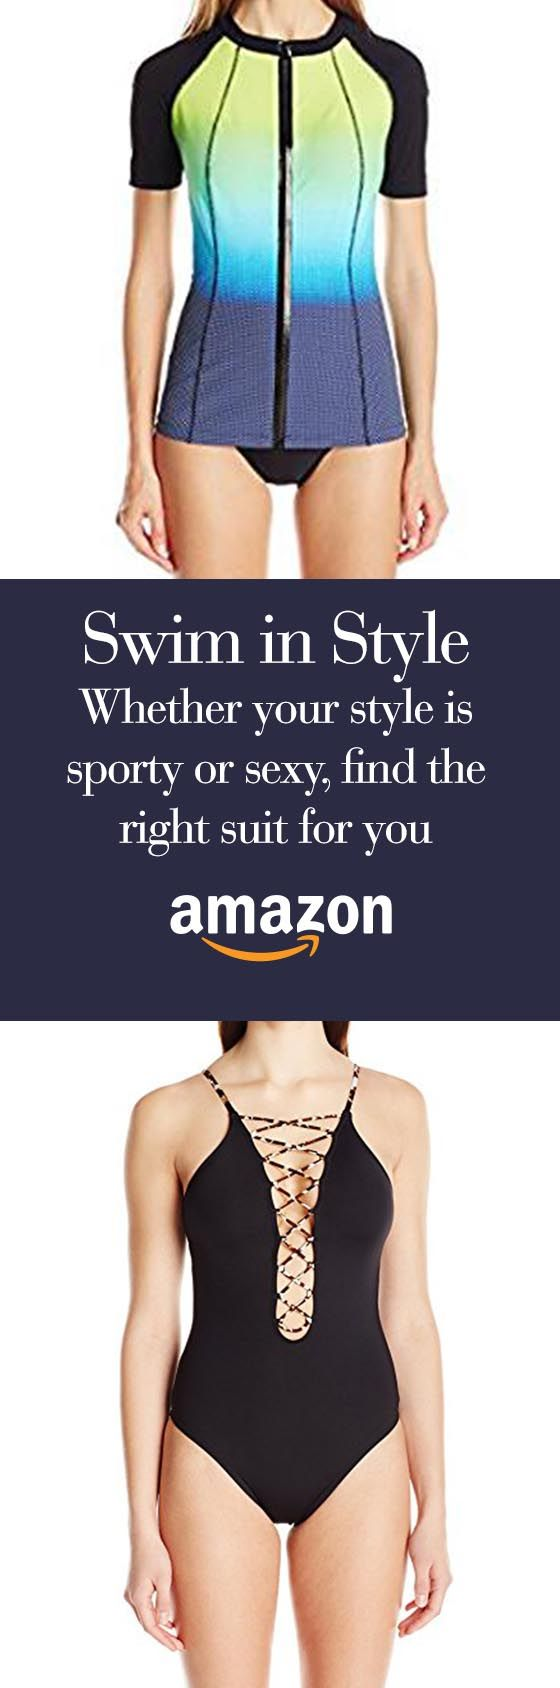 Summer sunbathing, winter holiday, or lap swim--Amazon has a suit for you.